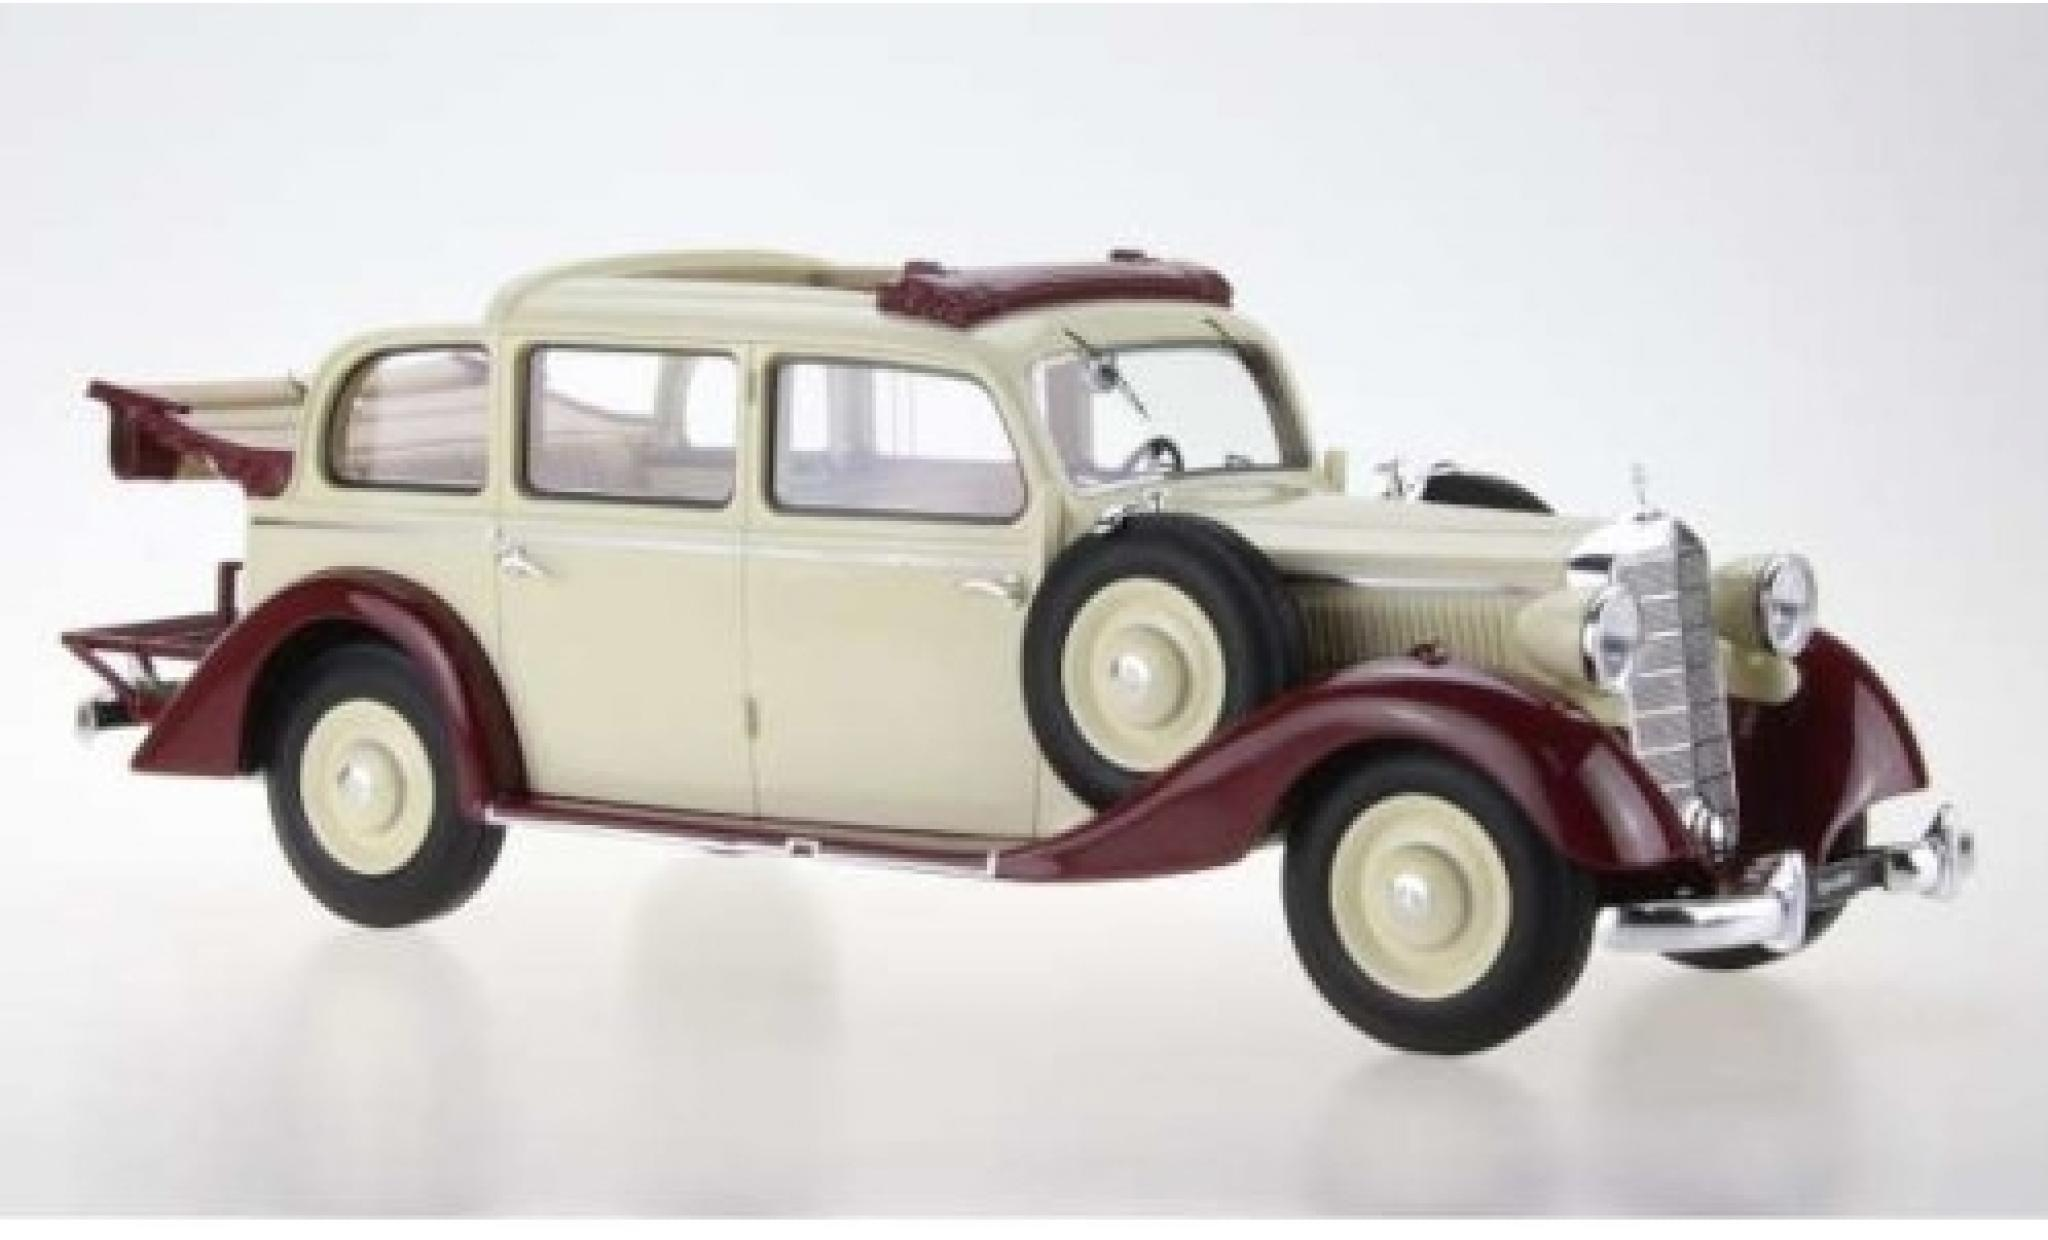 Mercedes 260 1/18 Triple 9 Collection D (W138) Pullman Landaulet beige/rouge 1936 komplett ouverts/es Verdeck